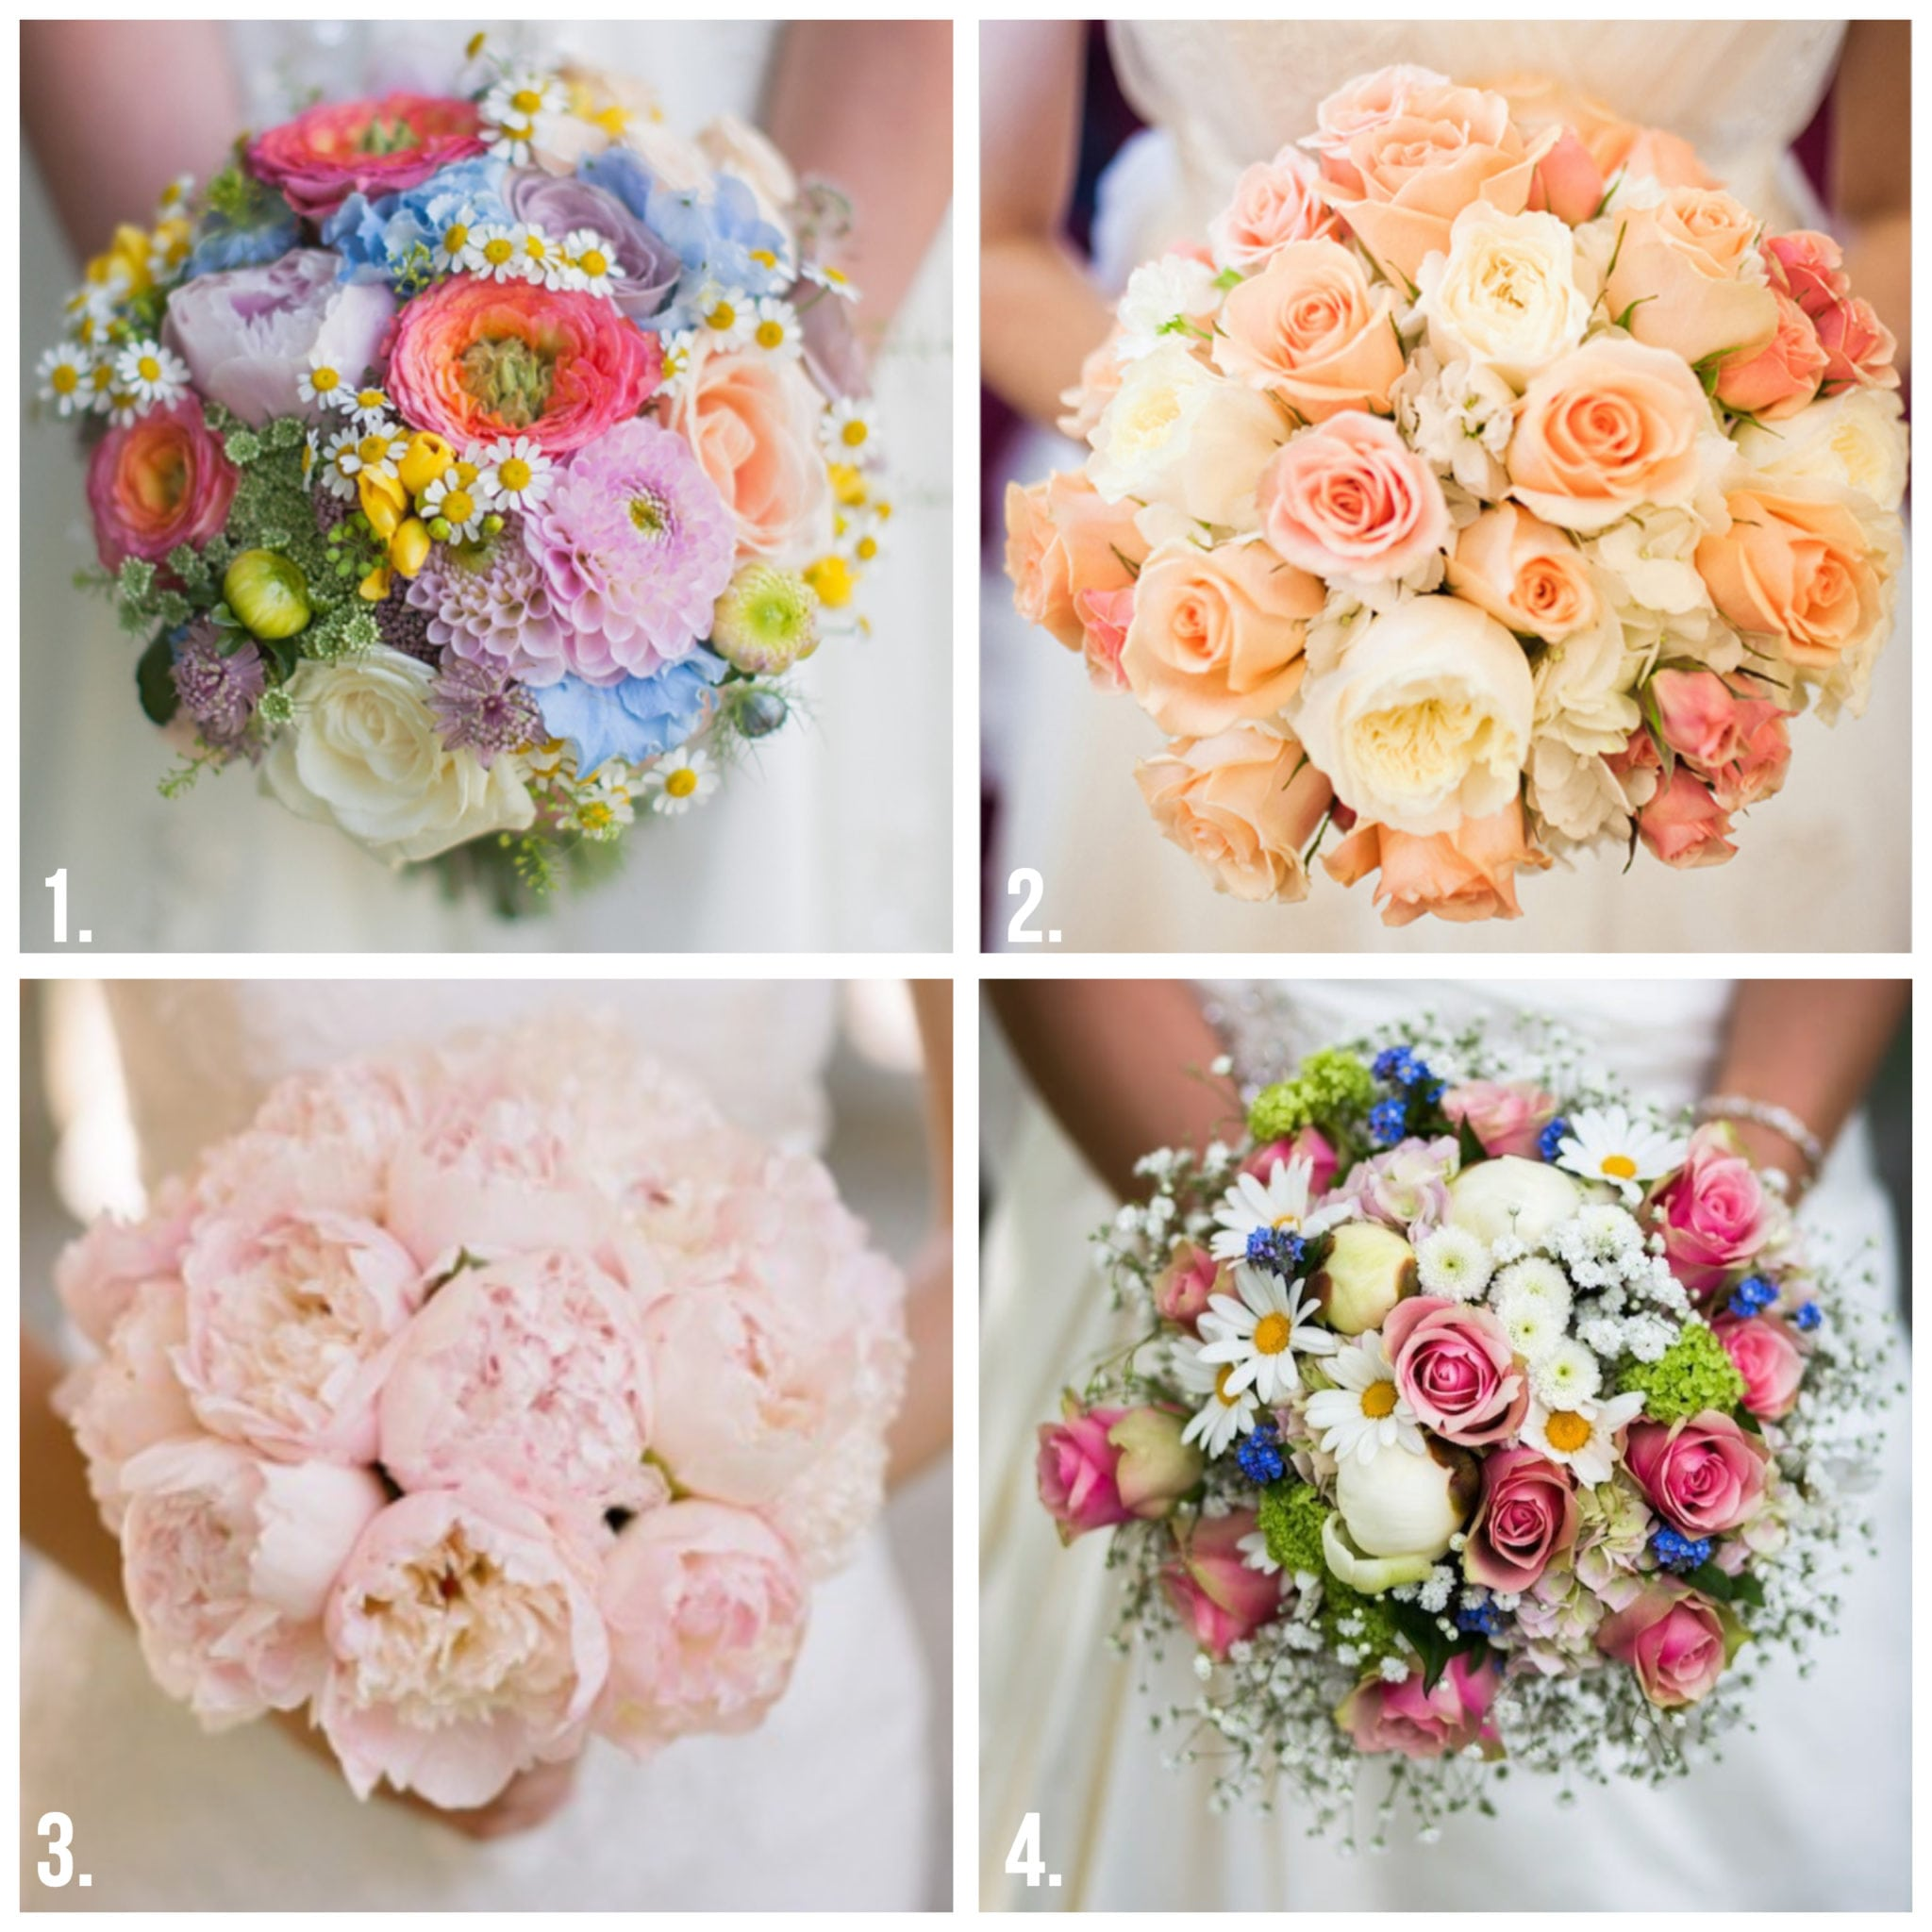 wedding bouquets - four panel image of round bouquets